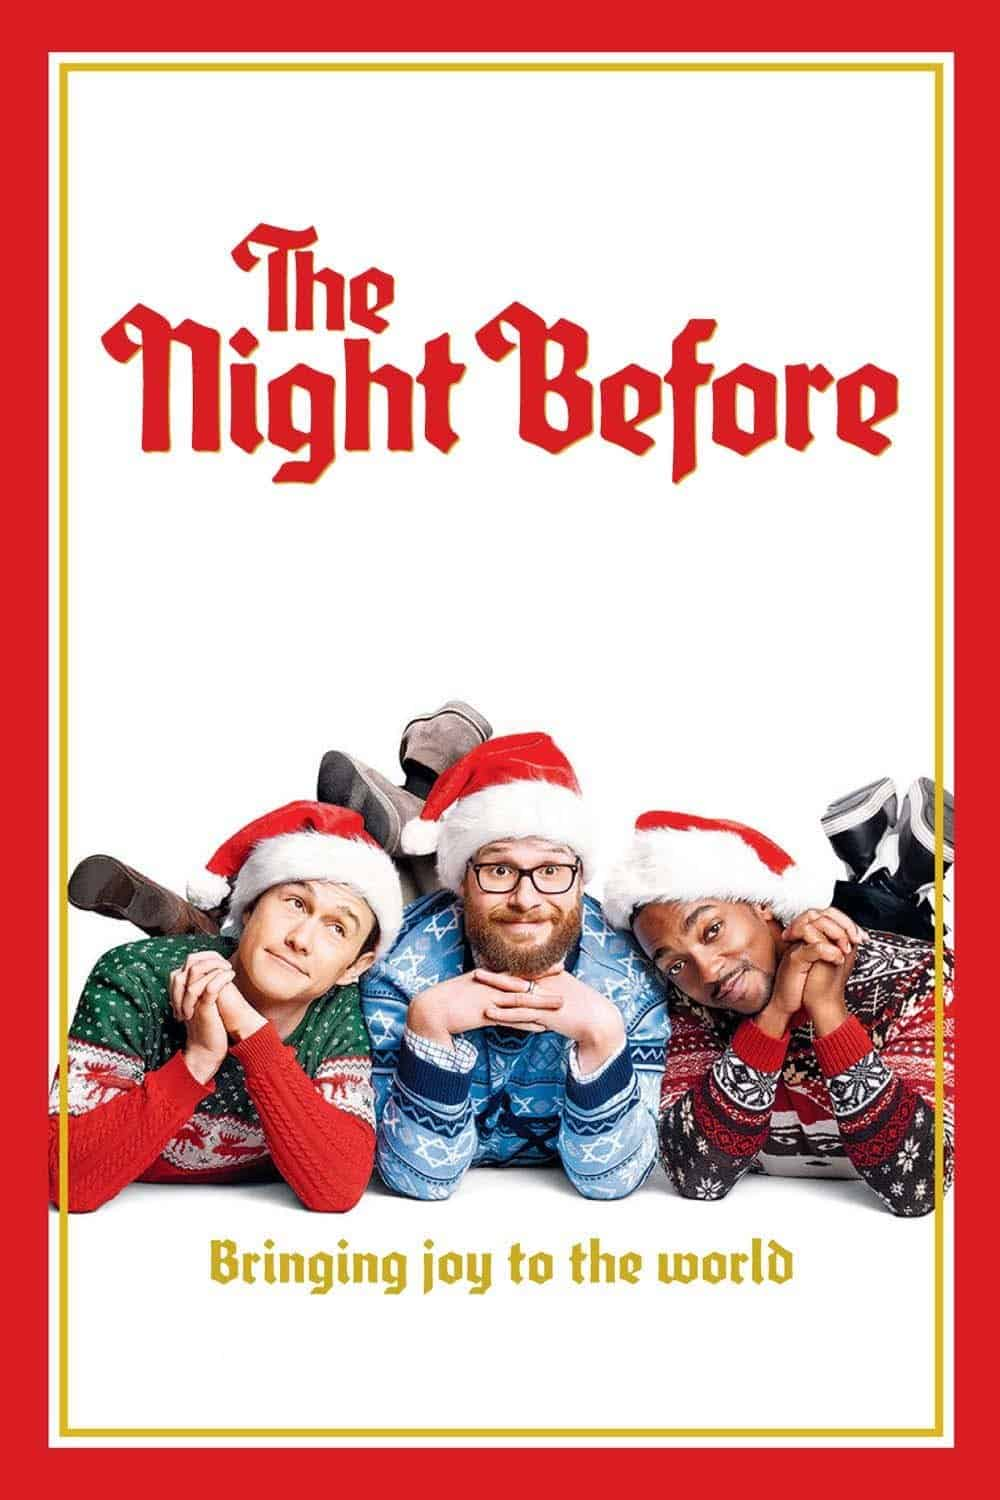 The Night Before, 2015